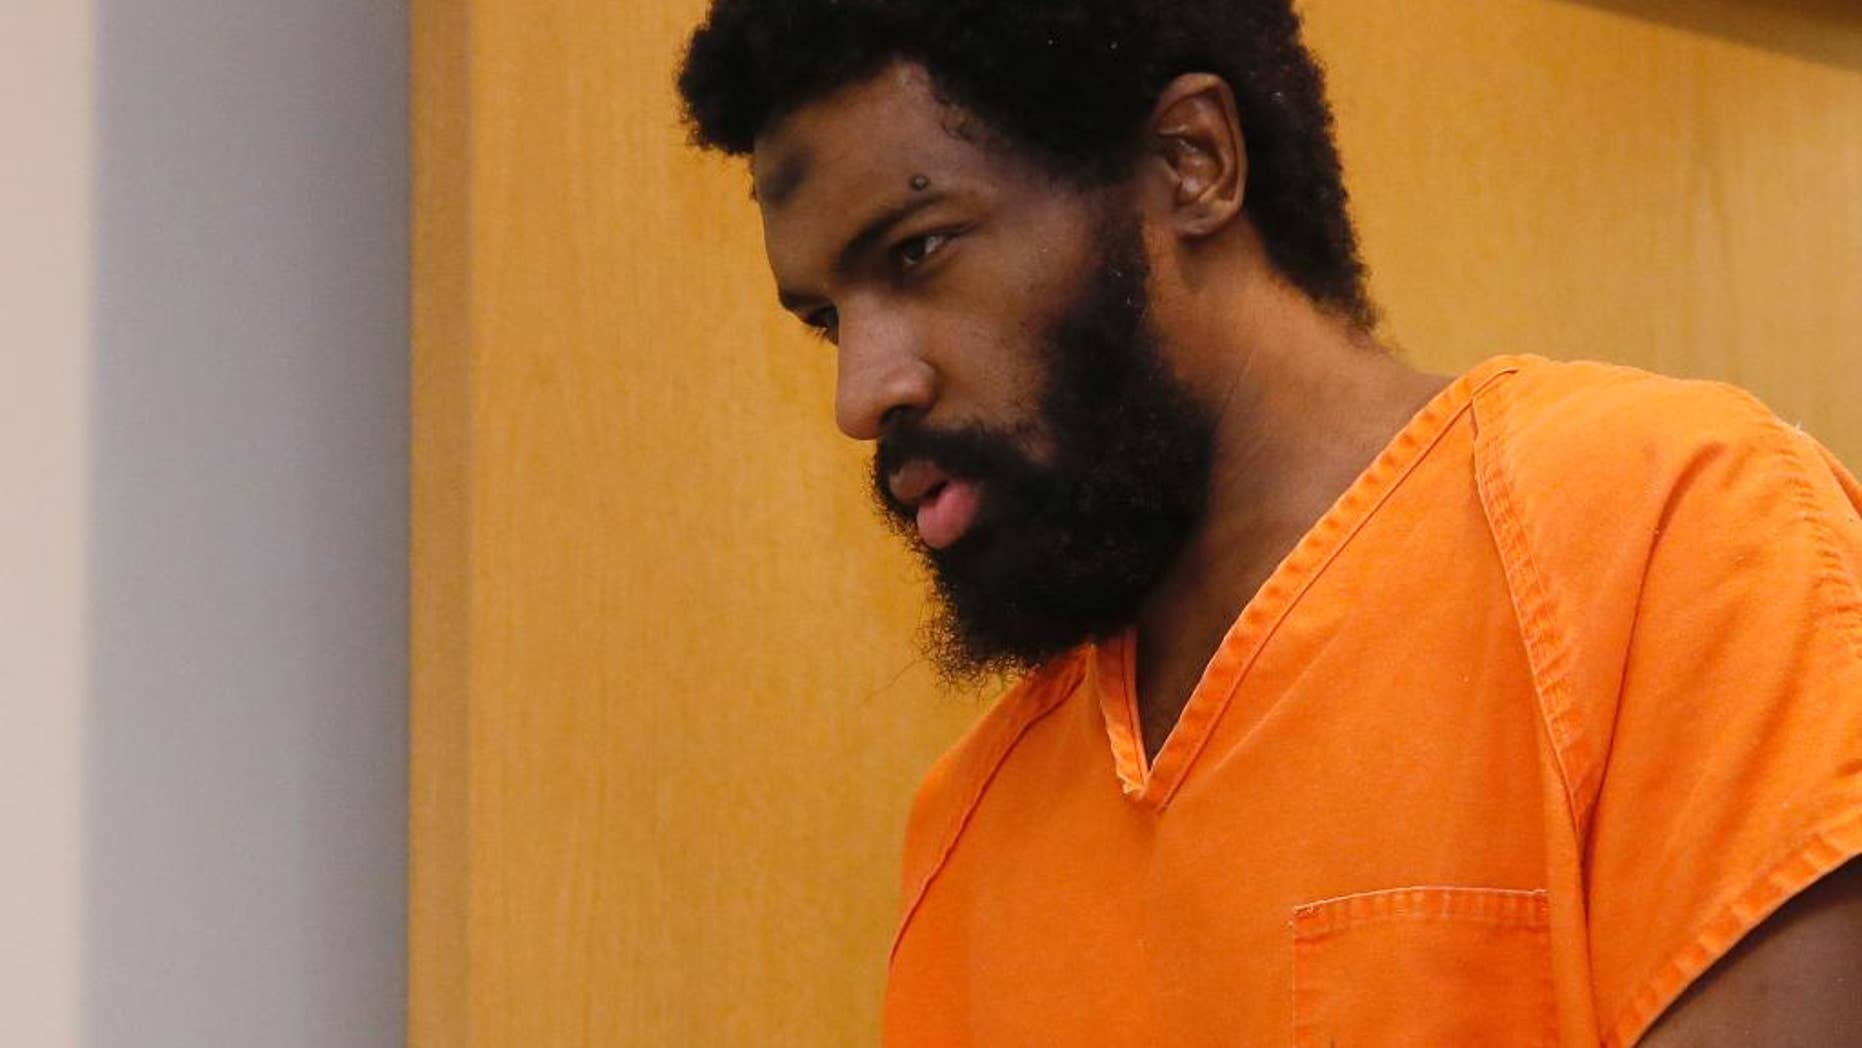 Alton Nolen had repeatedly requested to be sentenced to death.